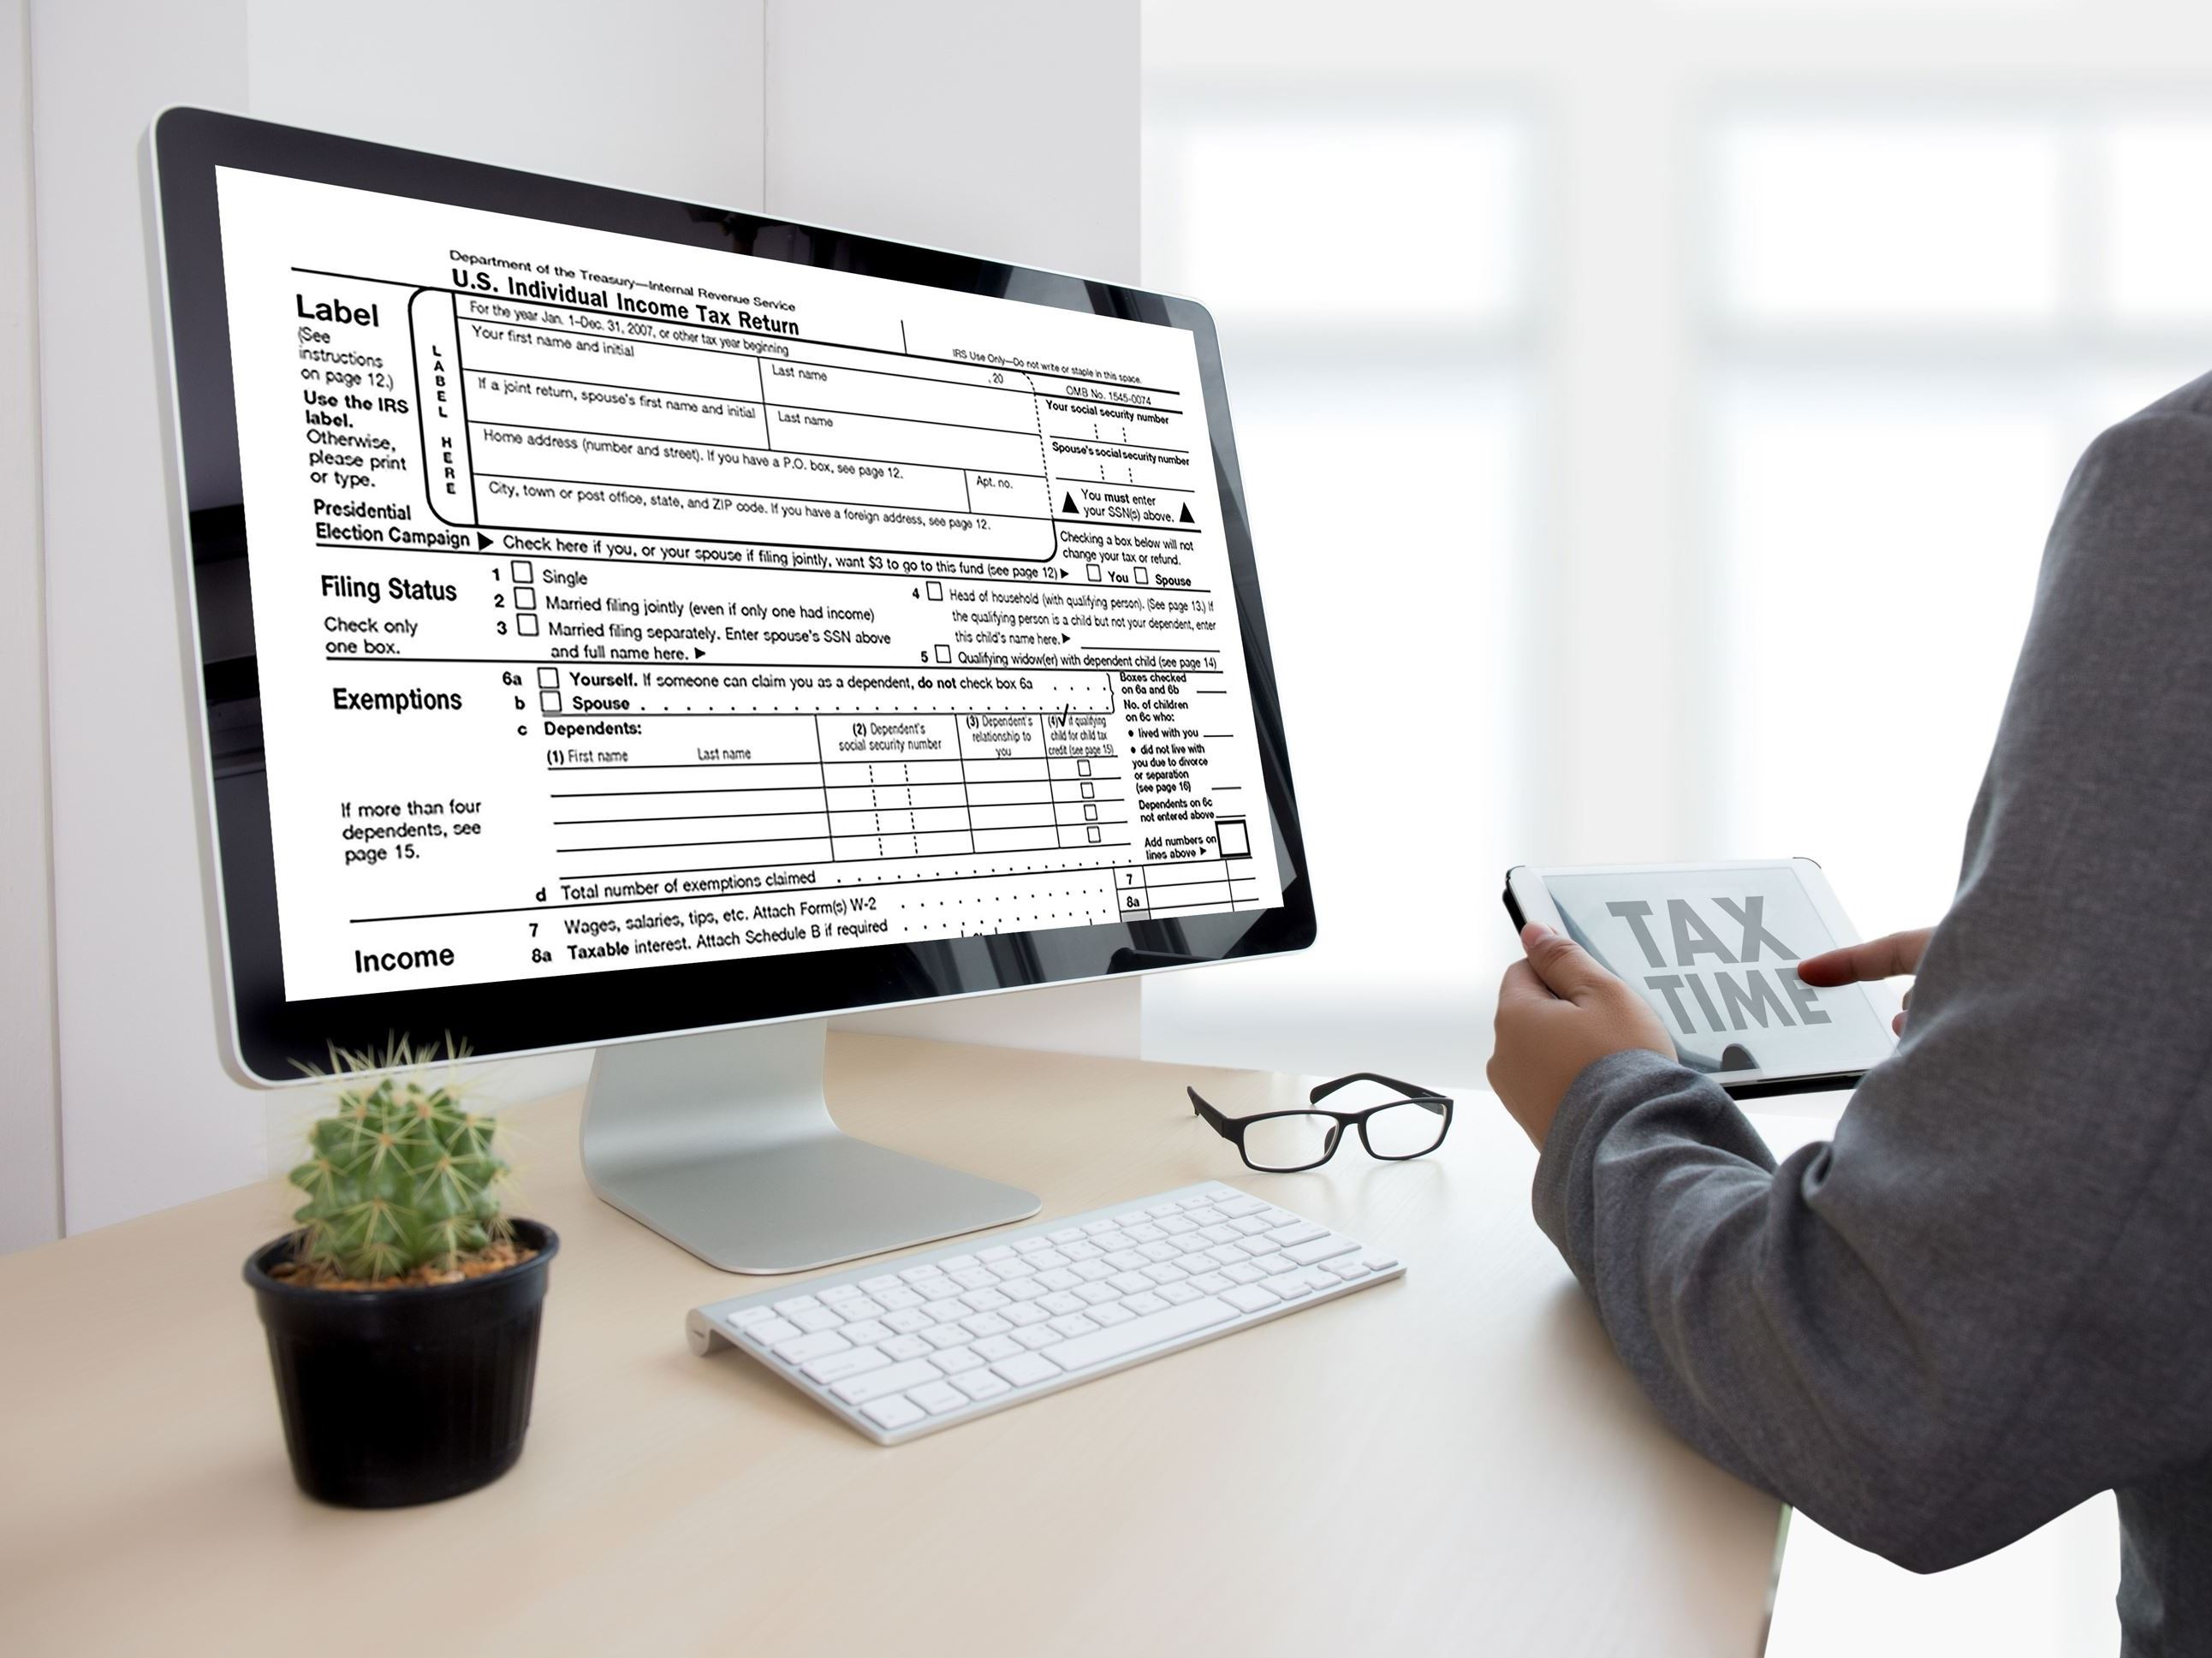 Accountant preparing income taxes using the computer.